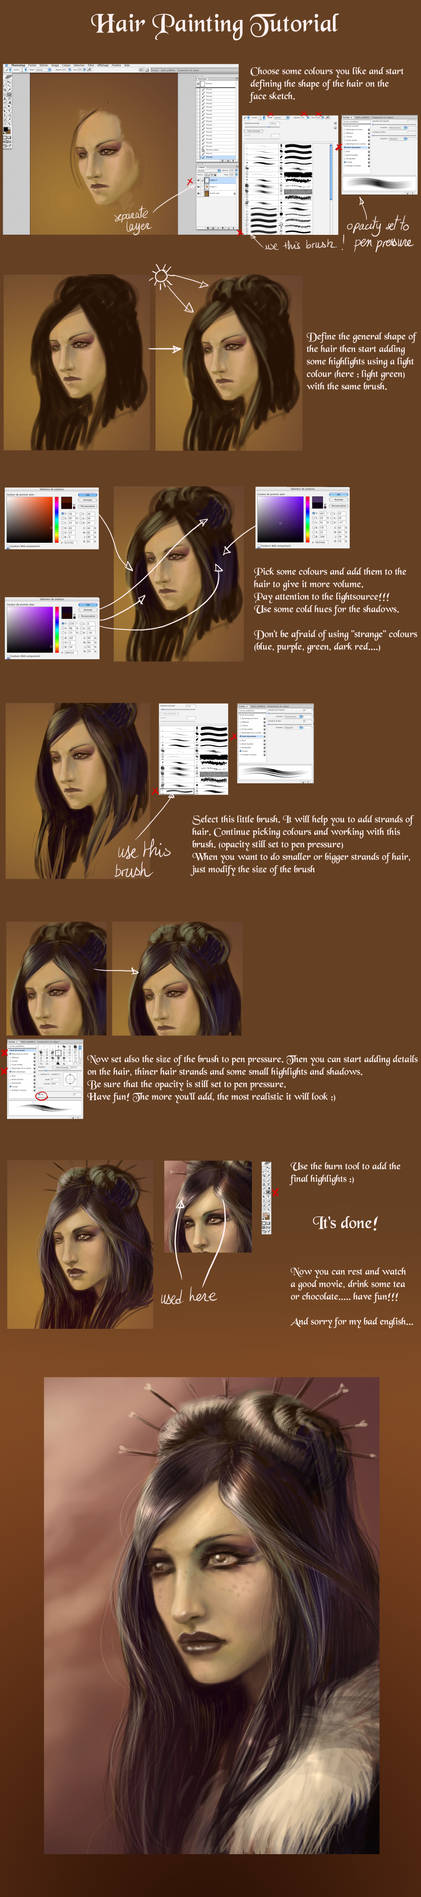 Hair painting tutorial